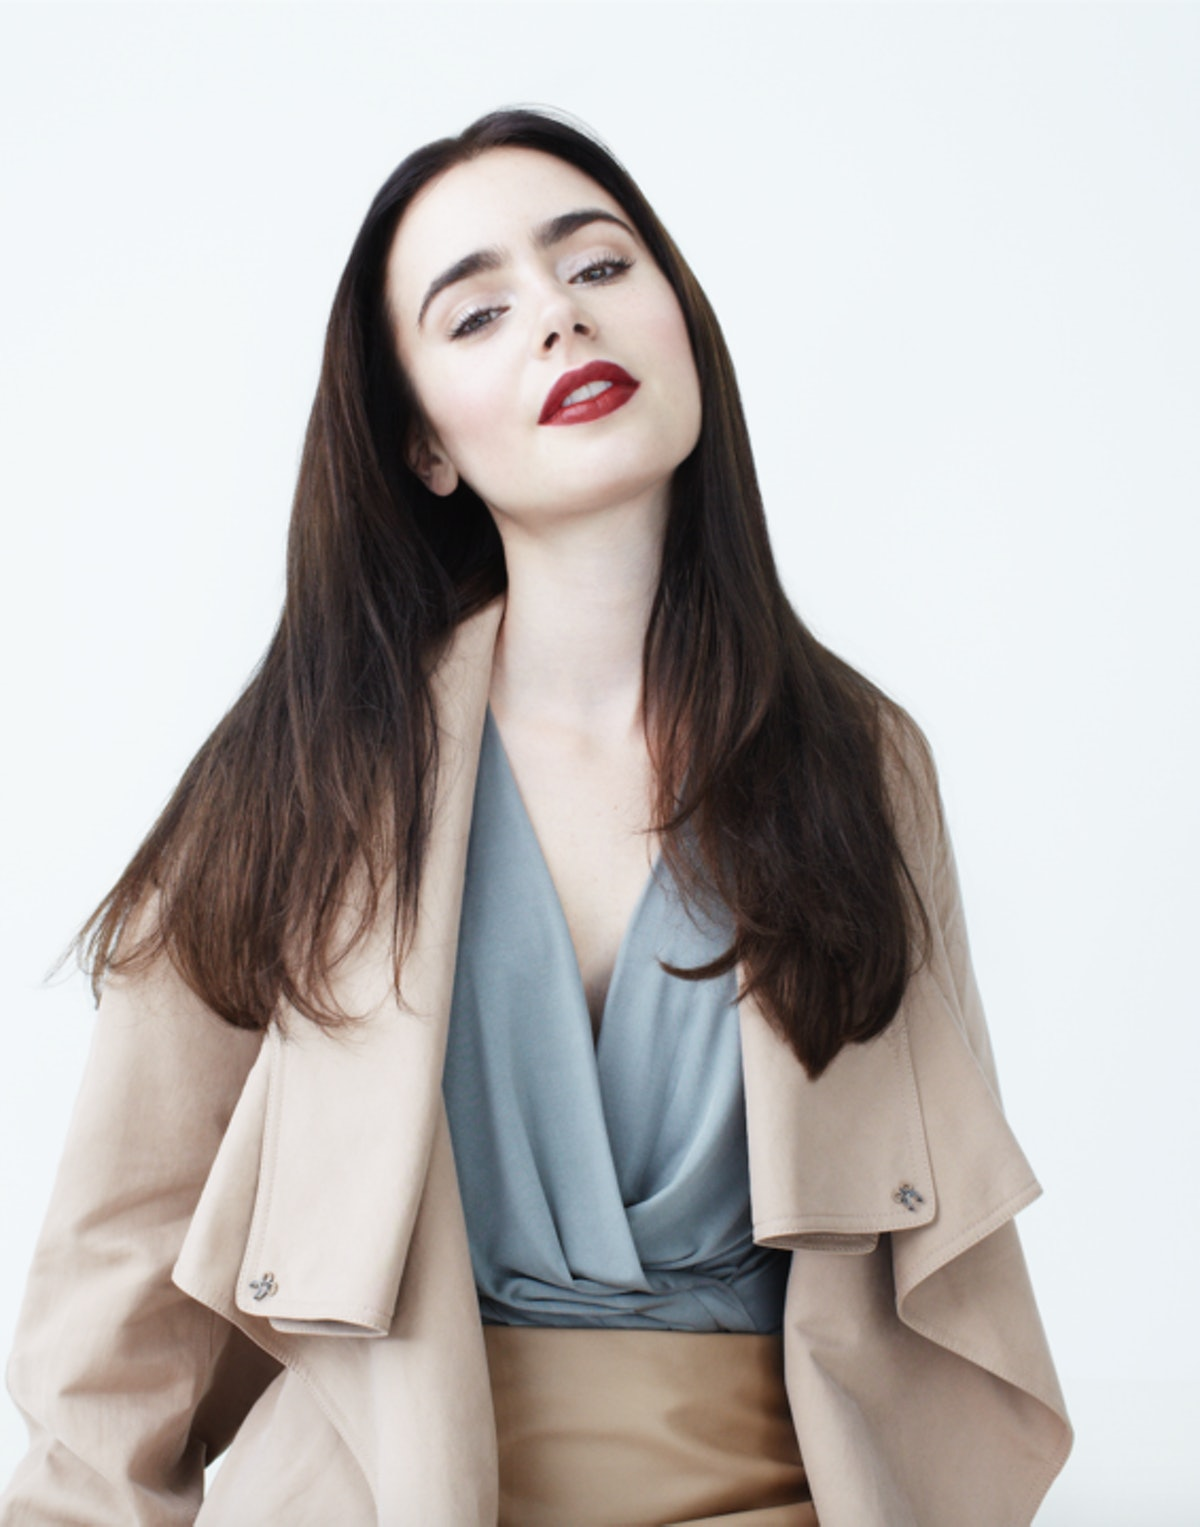 lilly_collins_720.png